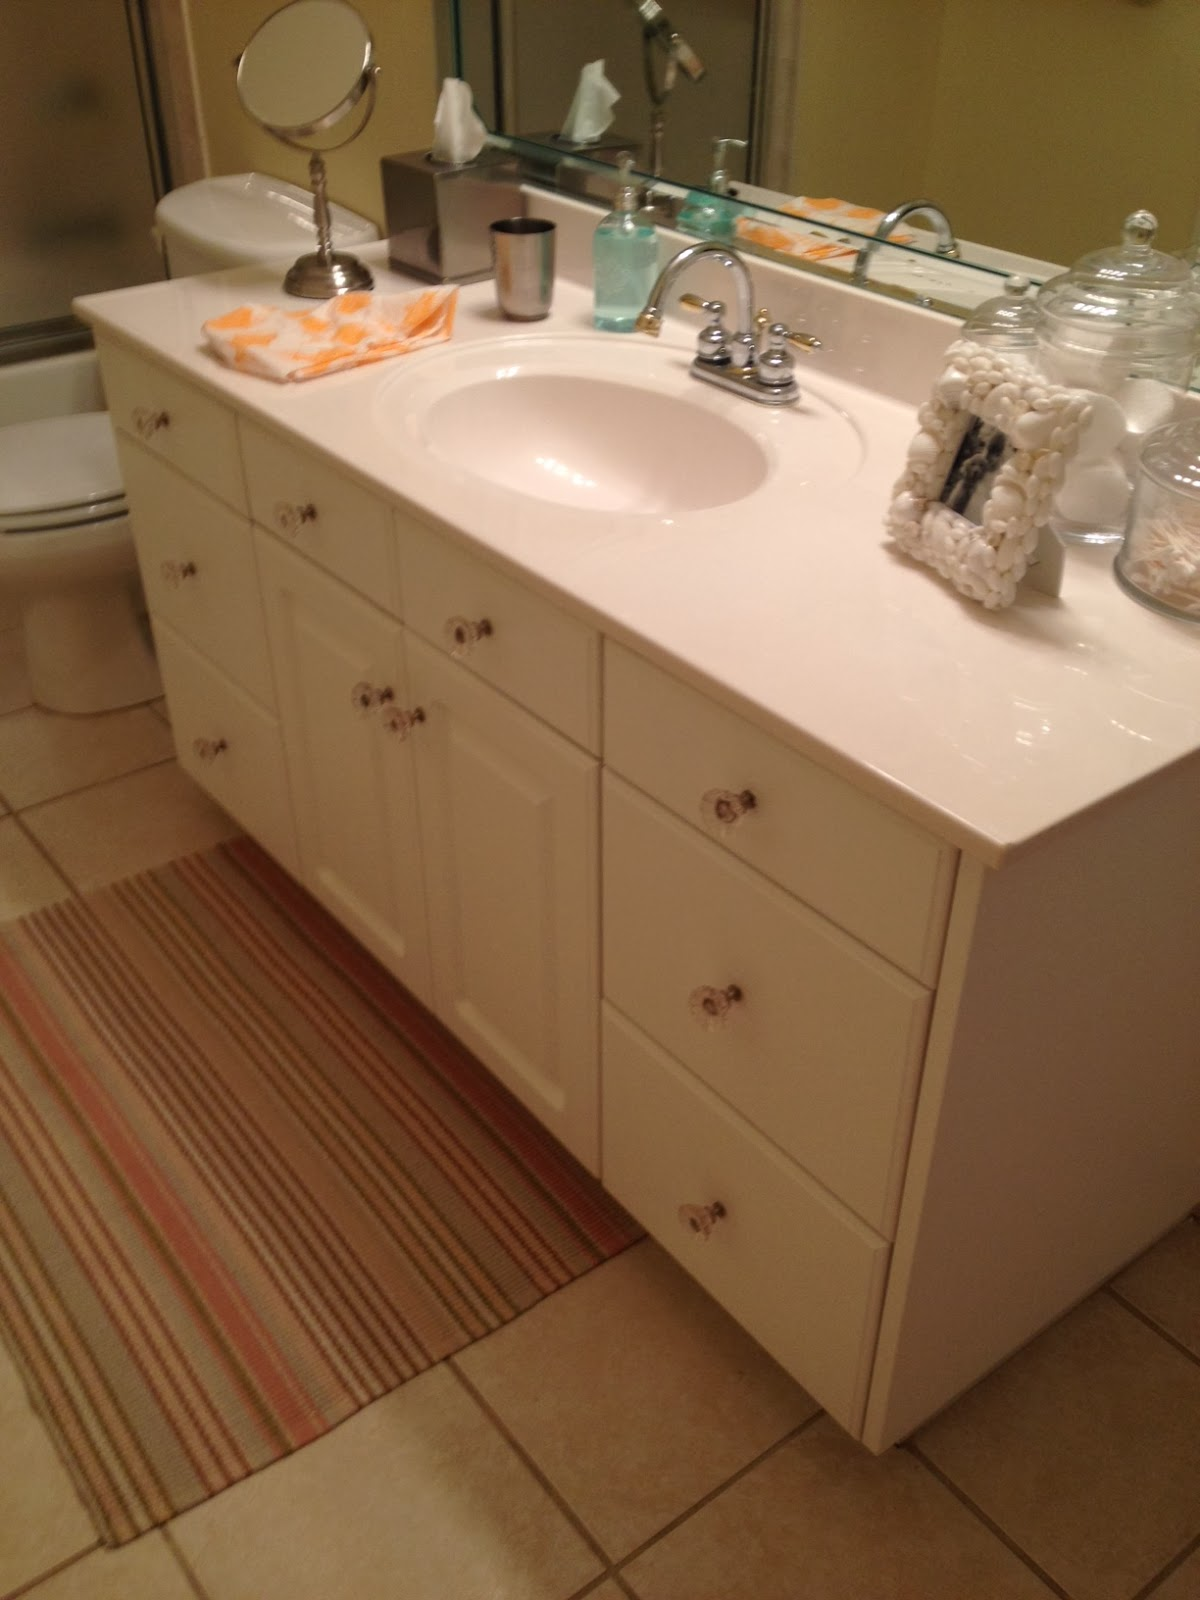 now we bleached the tile grout and changed the knobs on the cabinets